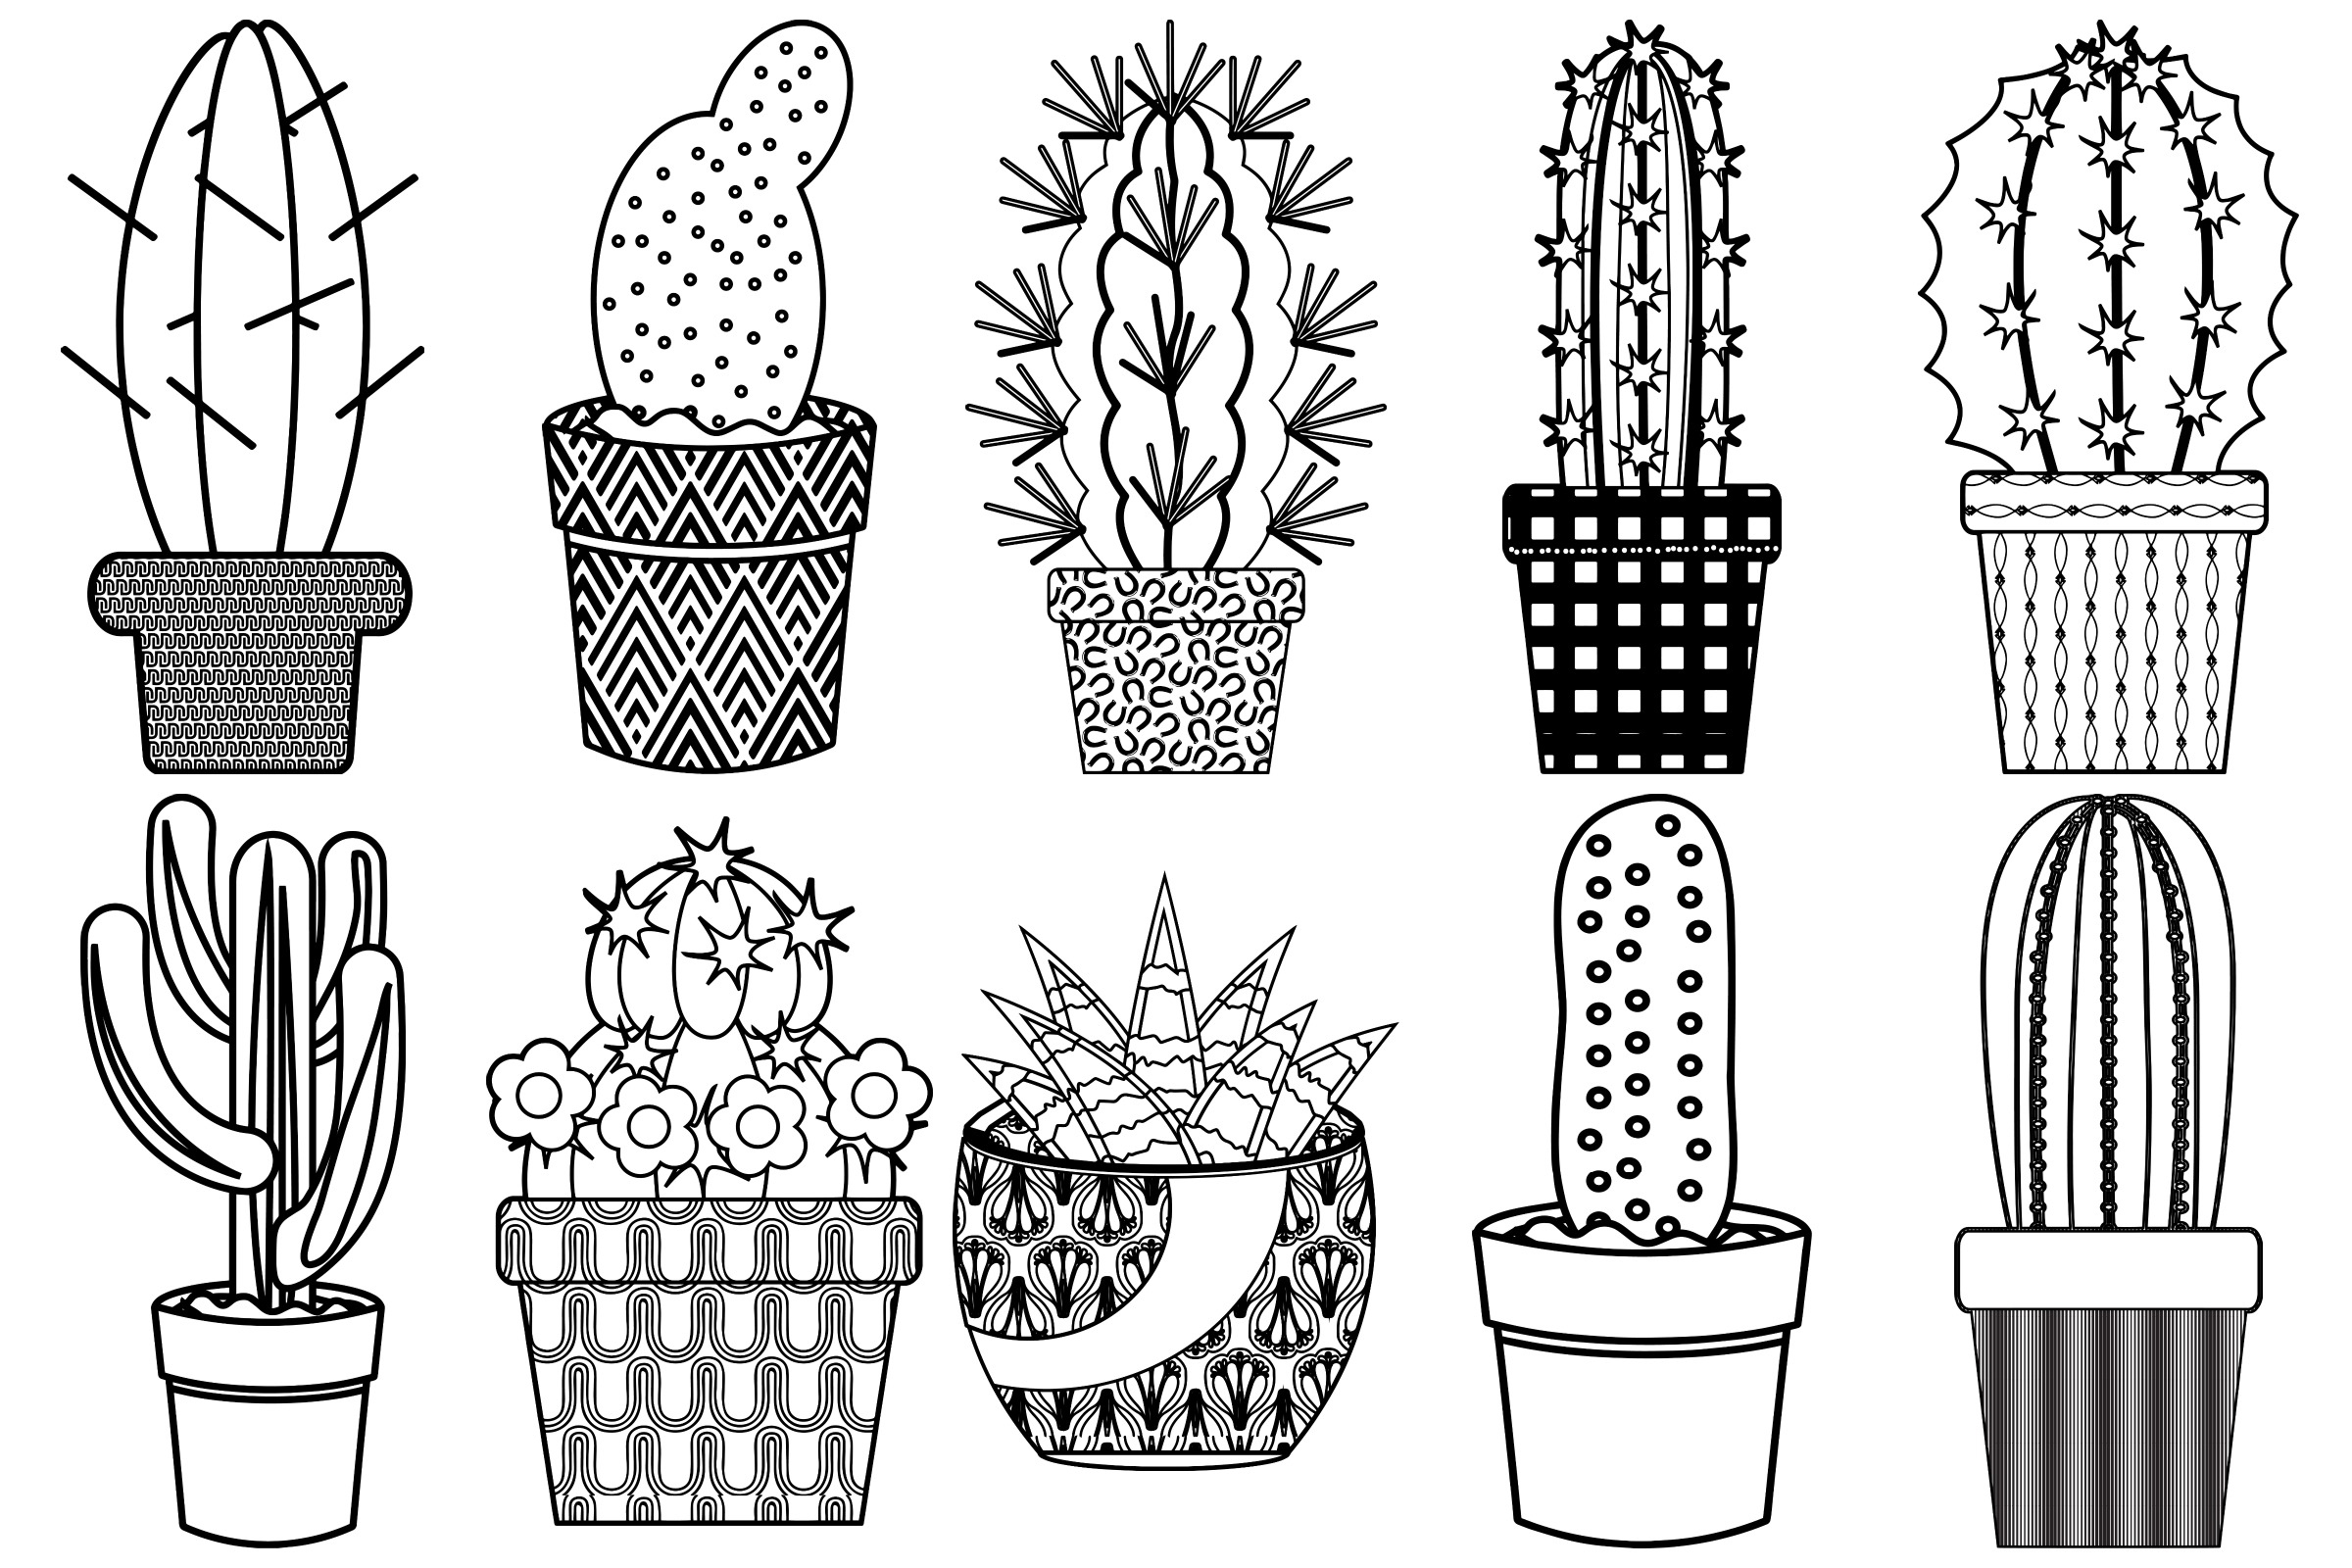 Cactus and Succulents AI EPS PNG, Vector Clip Art example image 3